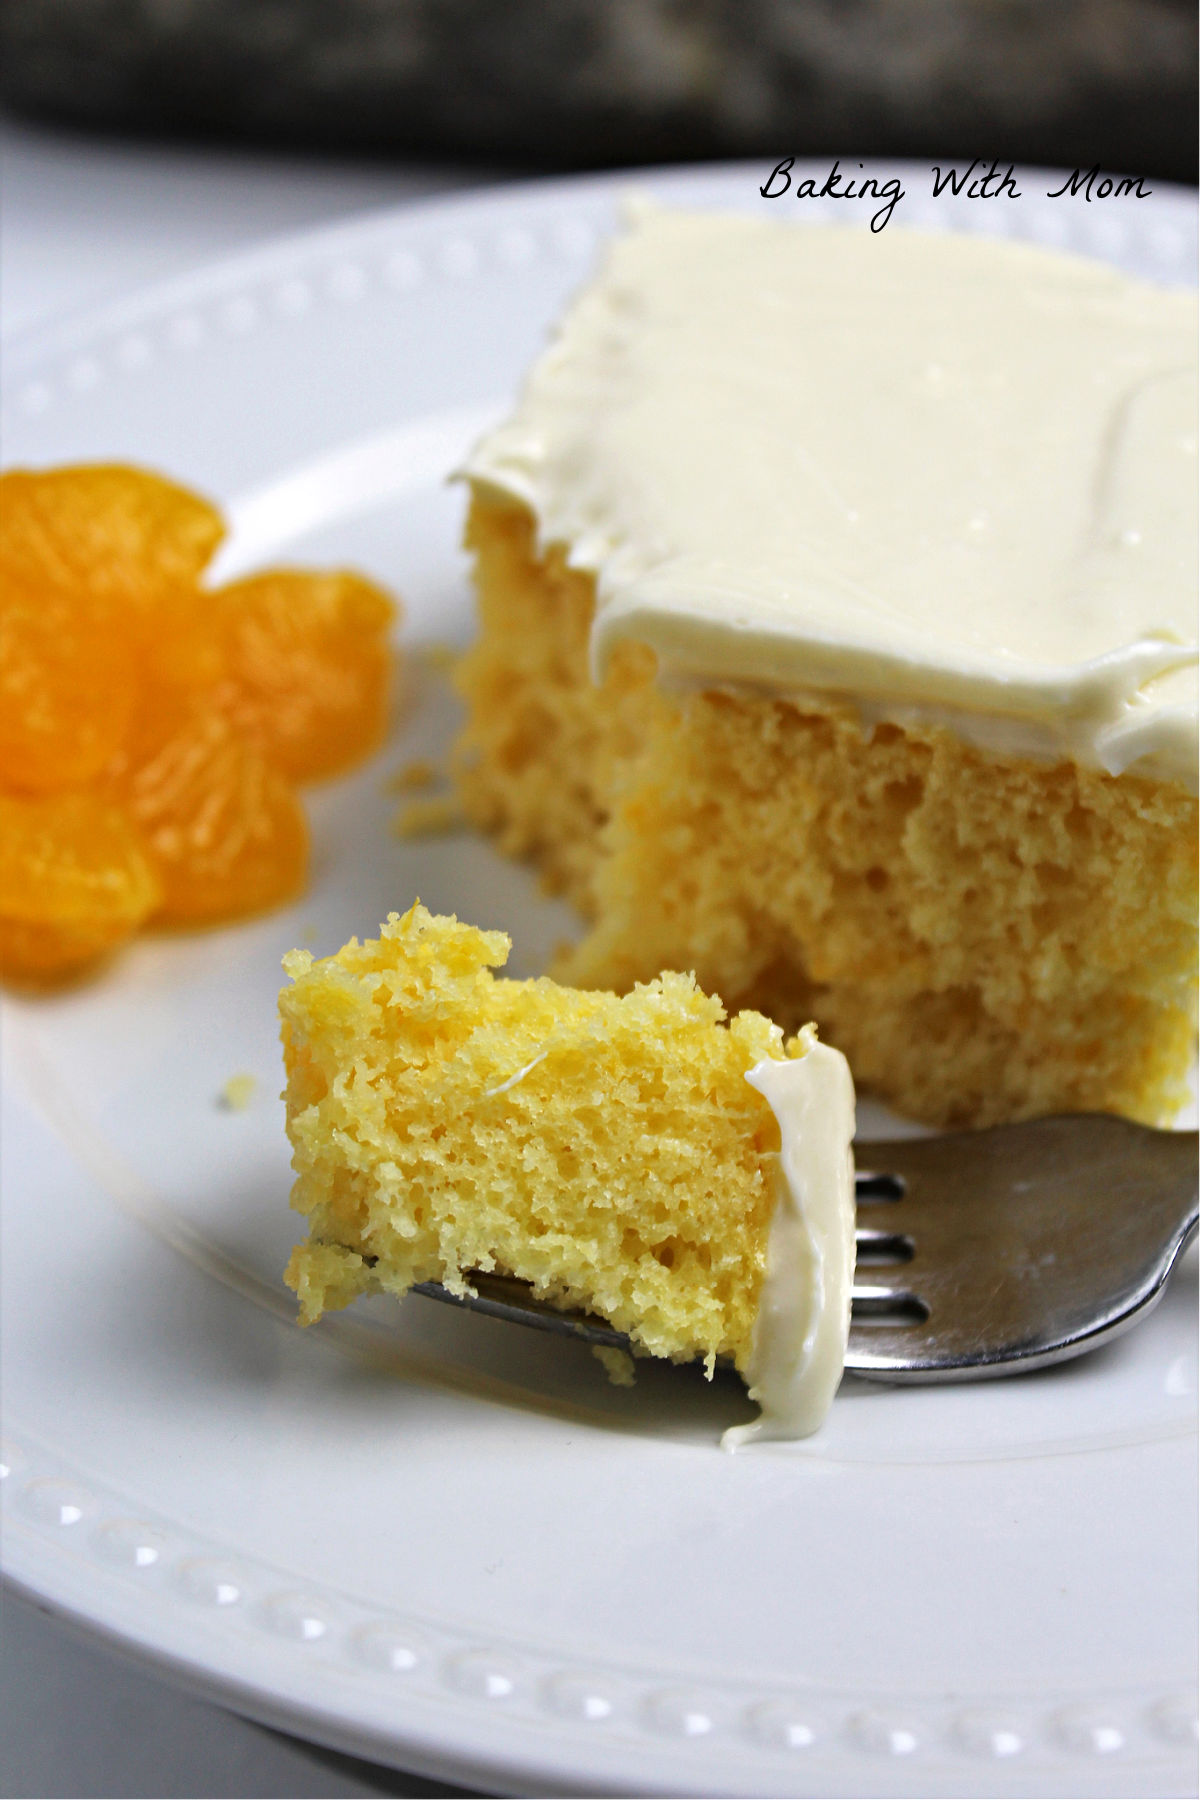 Fork with a piece of mandarin orange cake on it and slice of cake on a white plate.